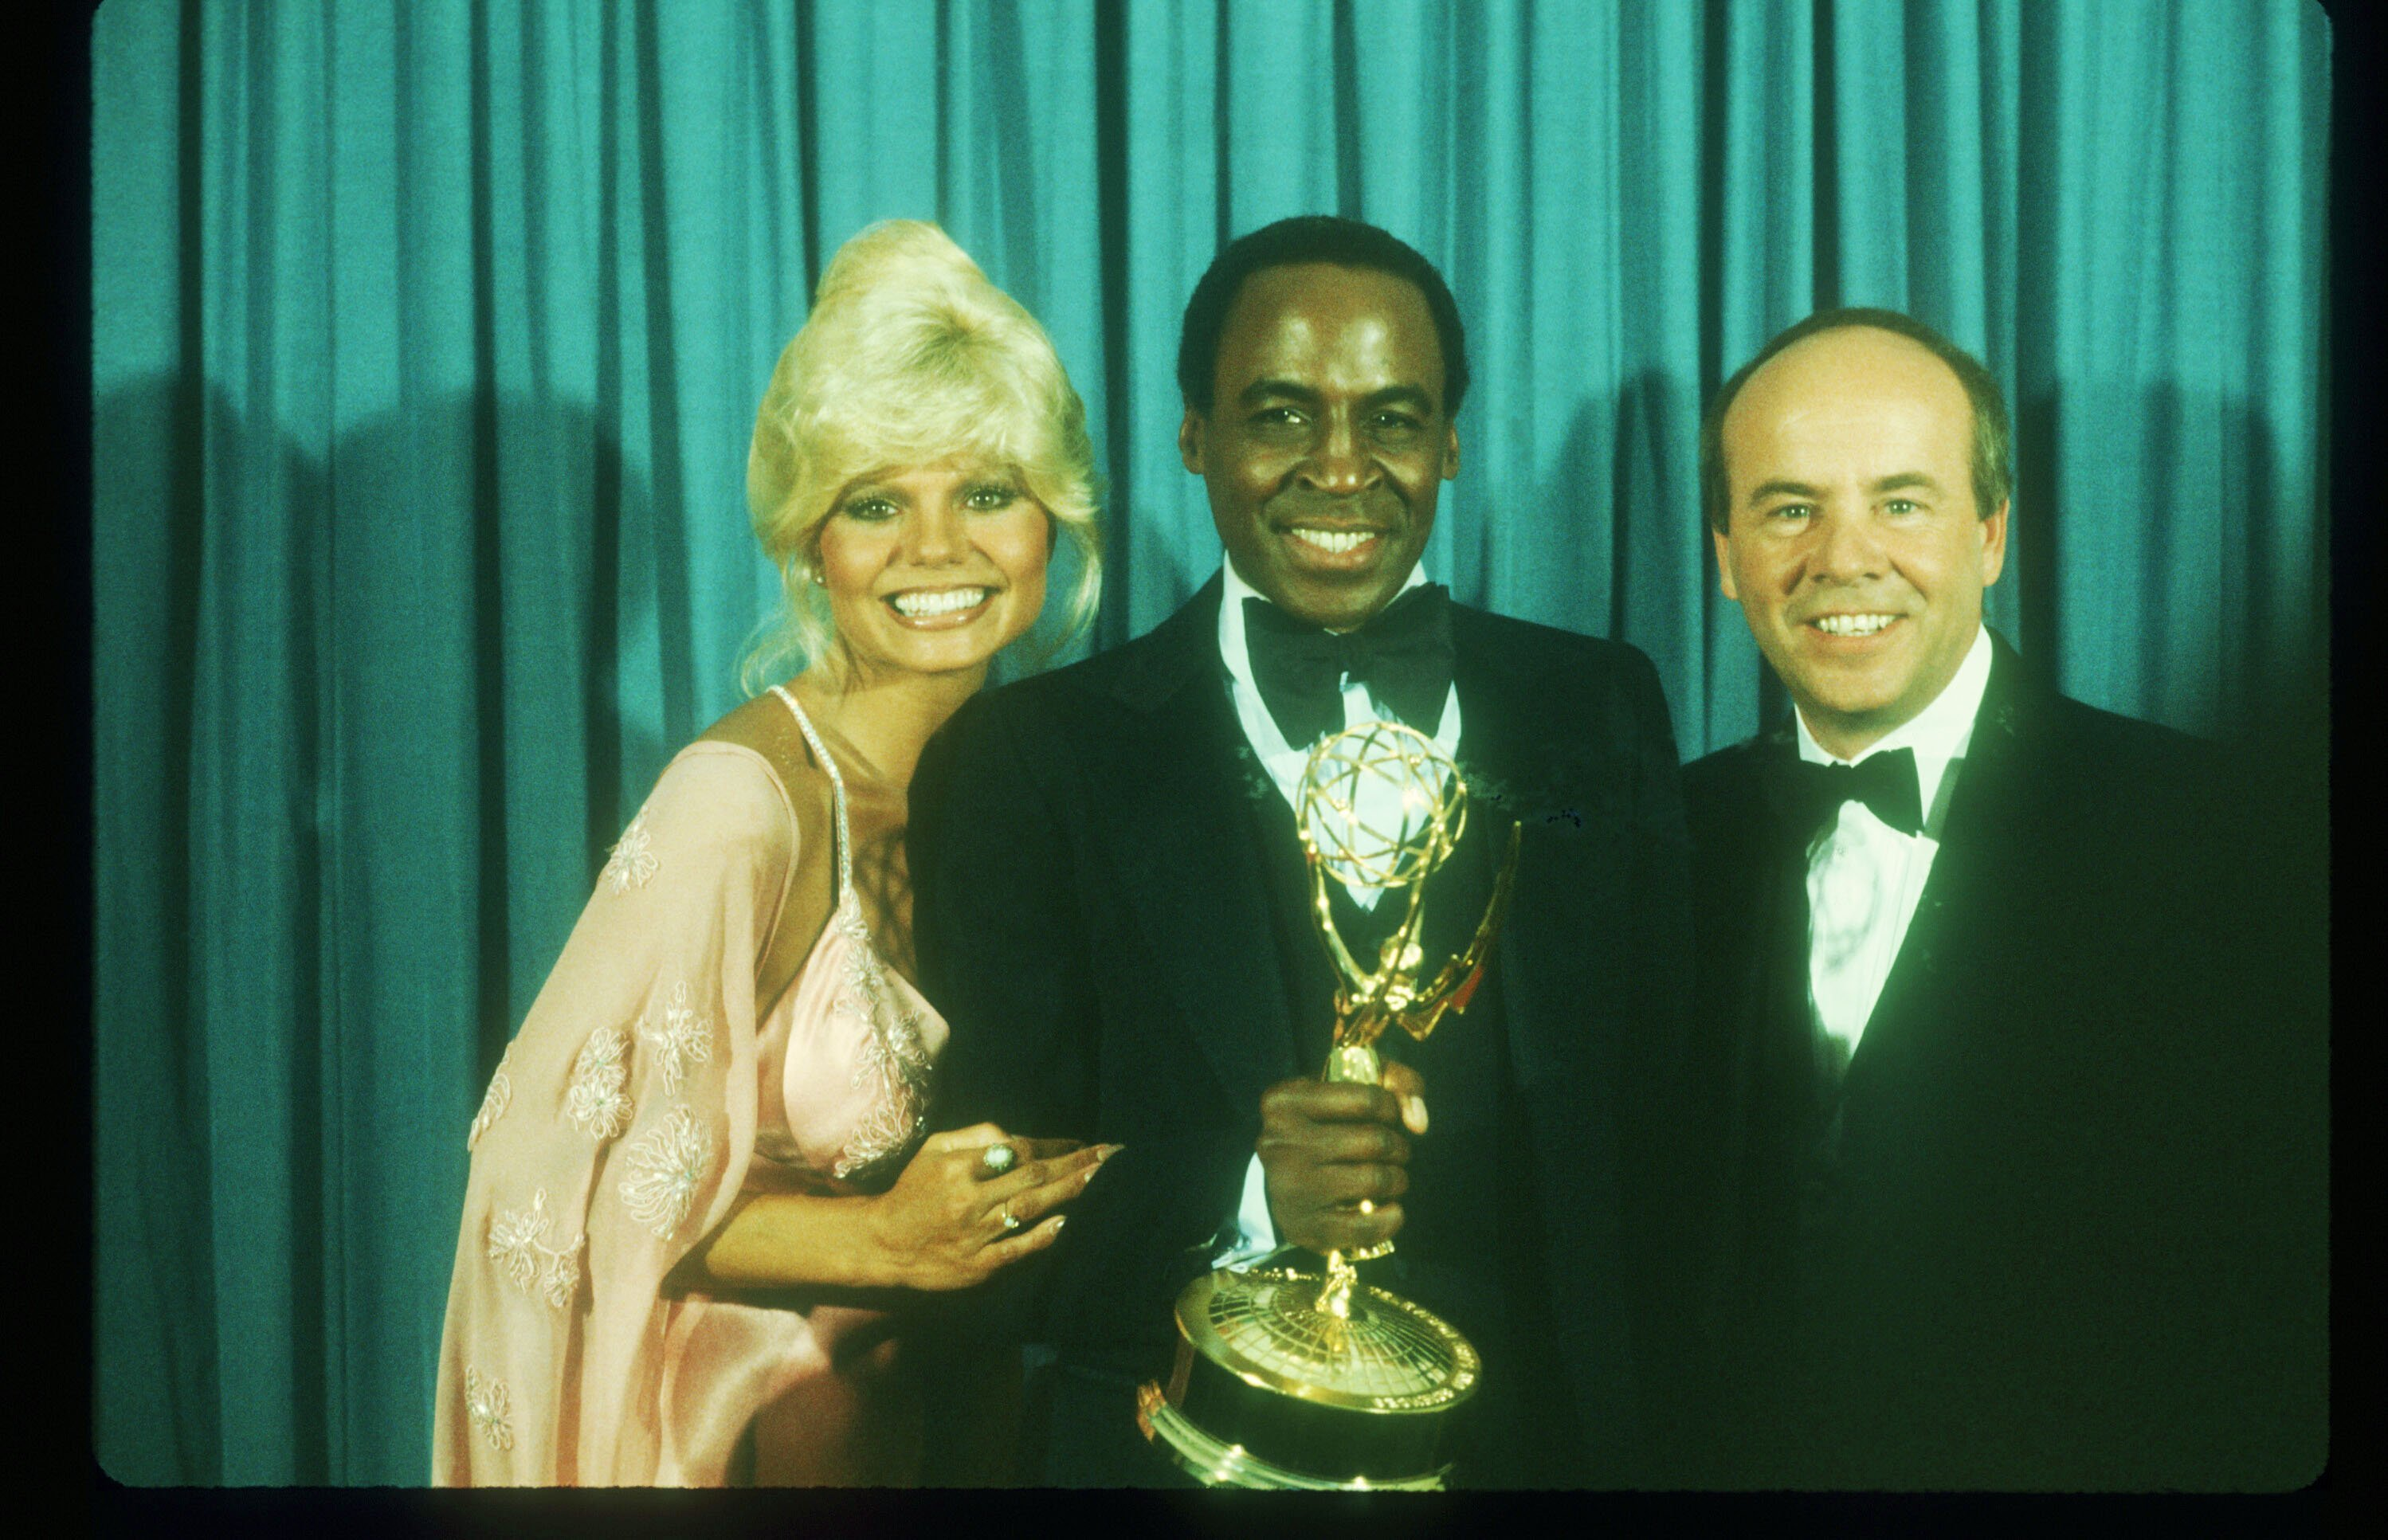 Loni Anderson, Robert Guillaume, and Tim Conway pose for a picture August 1979 after he won the Emmy for his role as Benson on the TV show 'soap.'' | Source: Getty Images